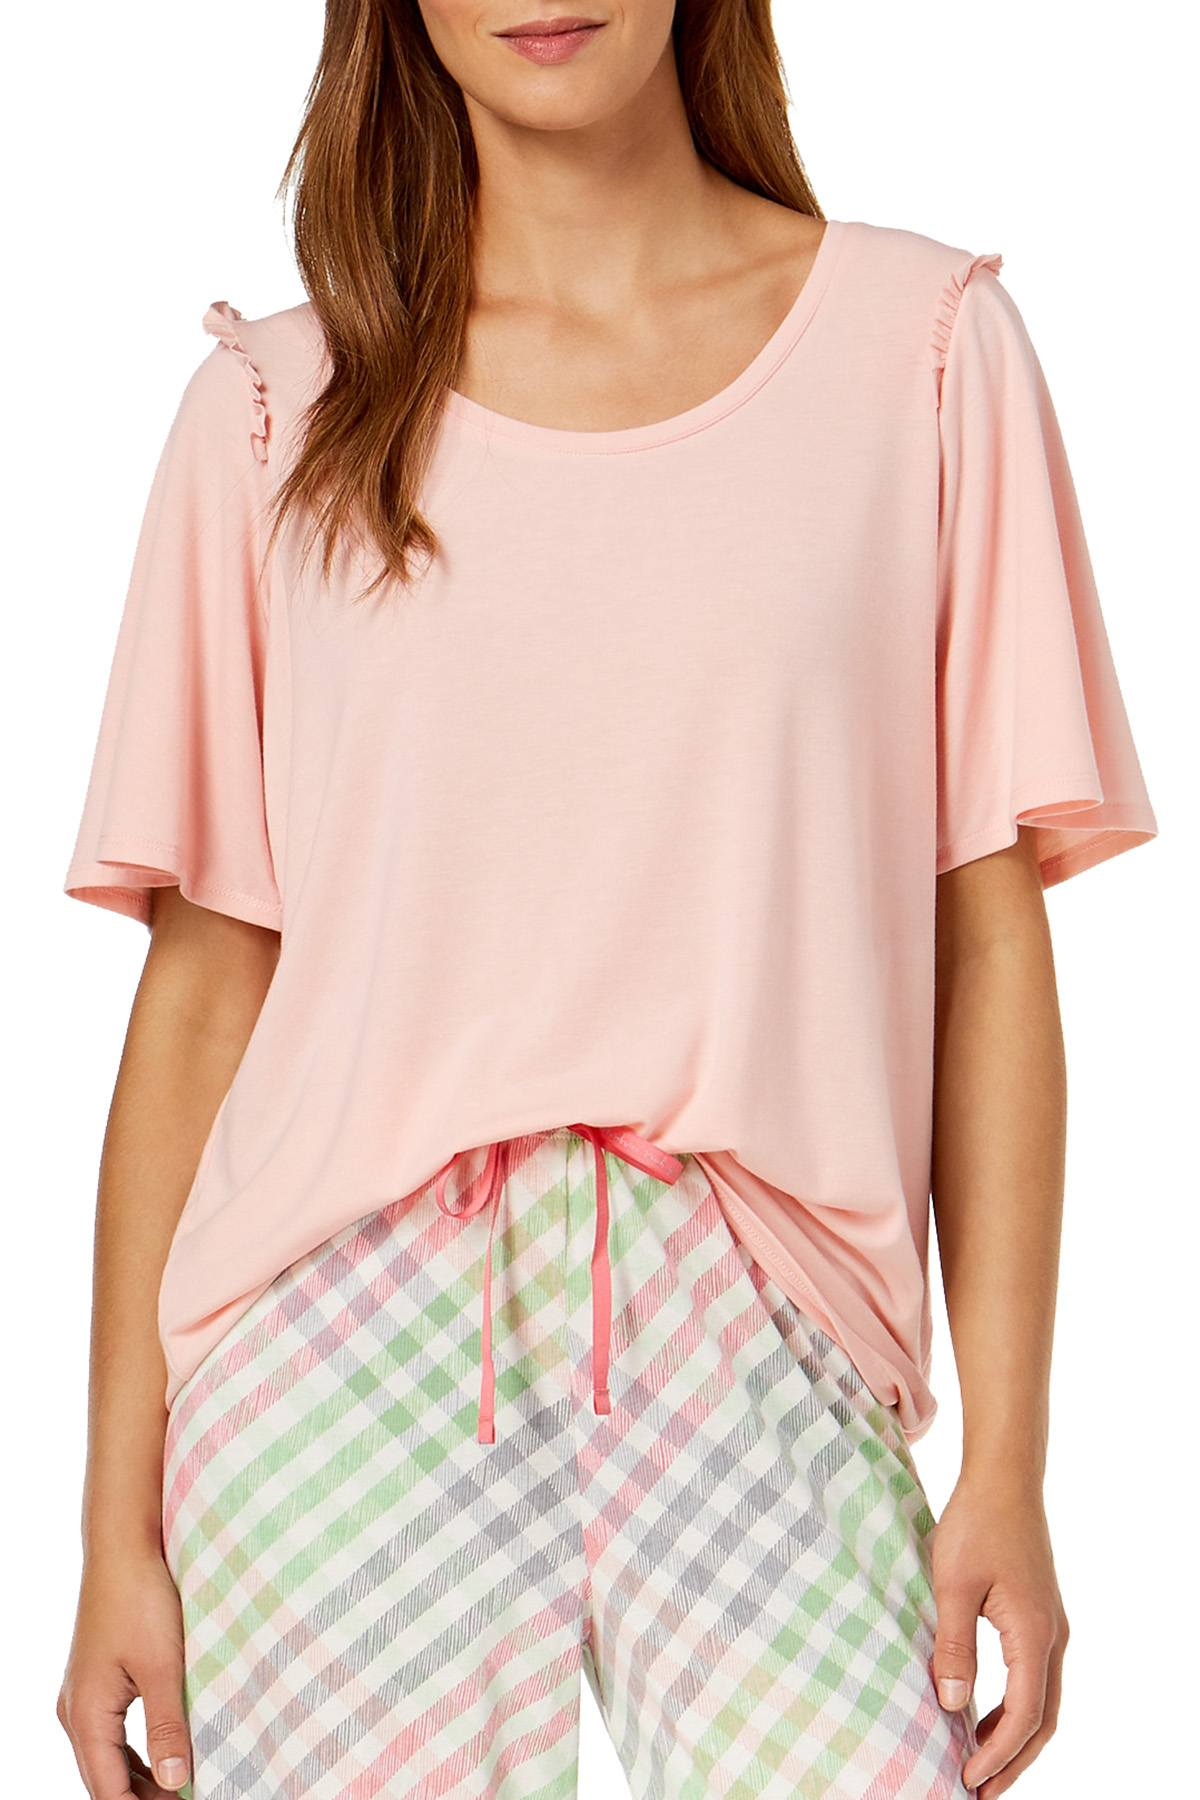 HUE Blossom Pink Bell Ruffled Sleeve Lounge Top